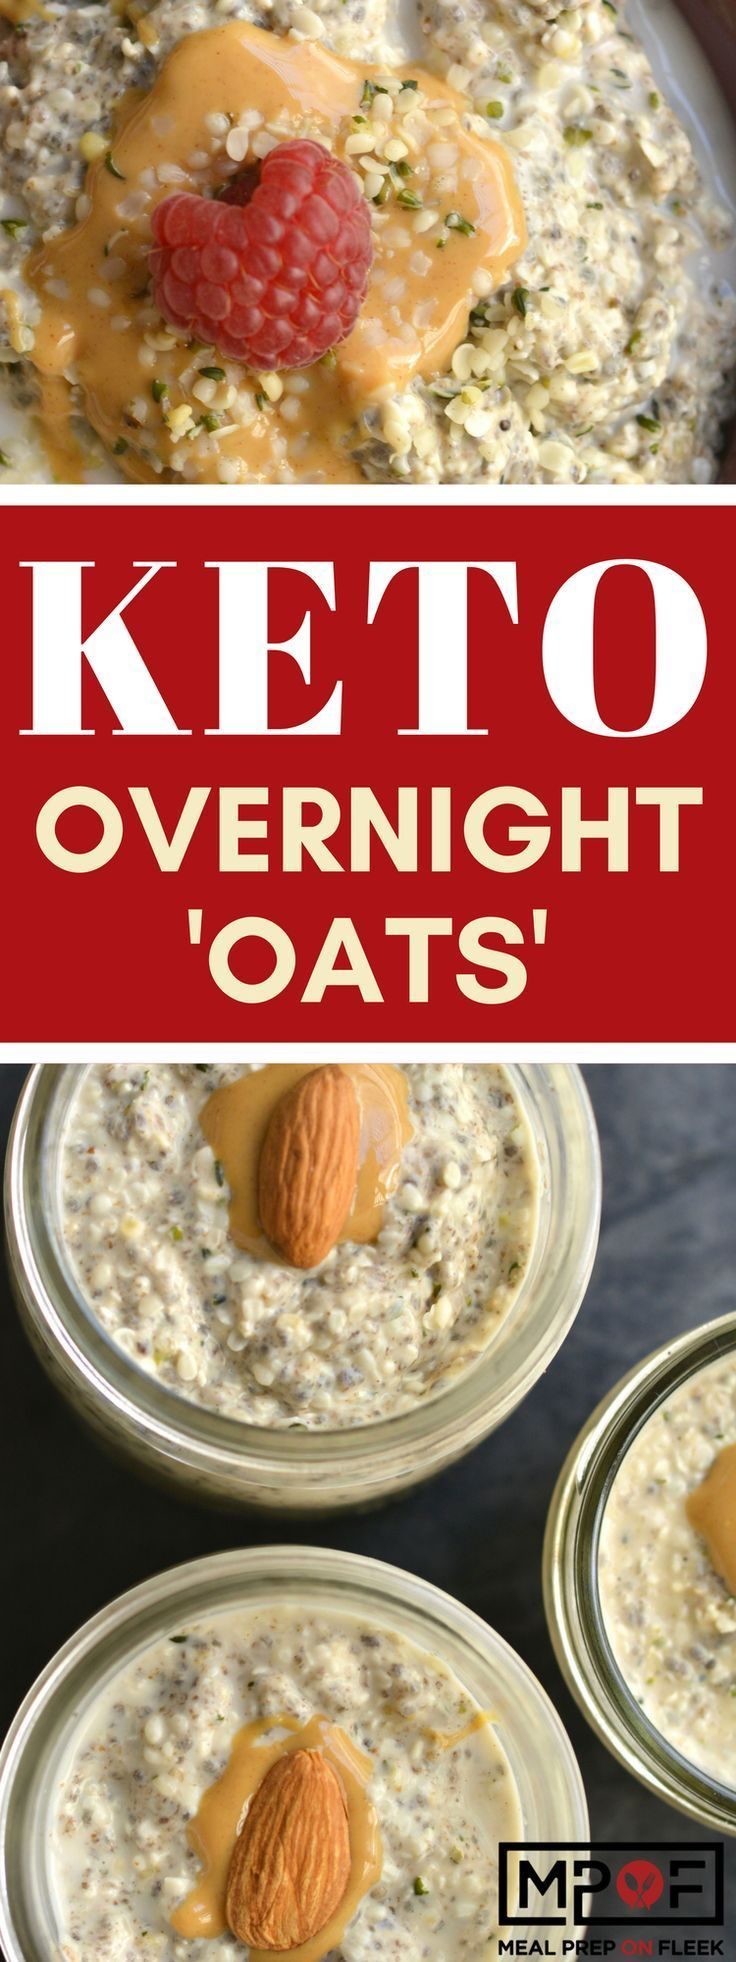 Keto Overnight 'Oats' - Made with hemp hearts is an easy make ahead keto breakfast! Packed with protein and omega-3, you can't go wrong with this breakfast! #keto #ketorecipes #overnightoats #ketobreakfast